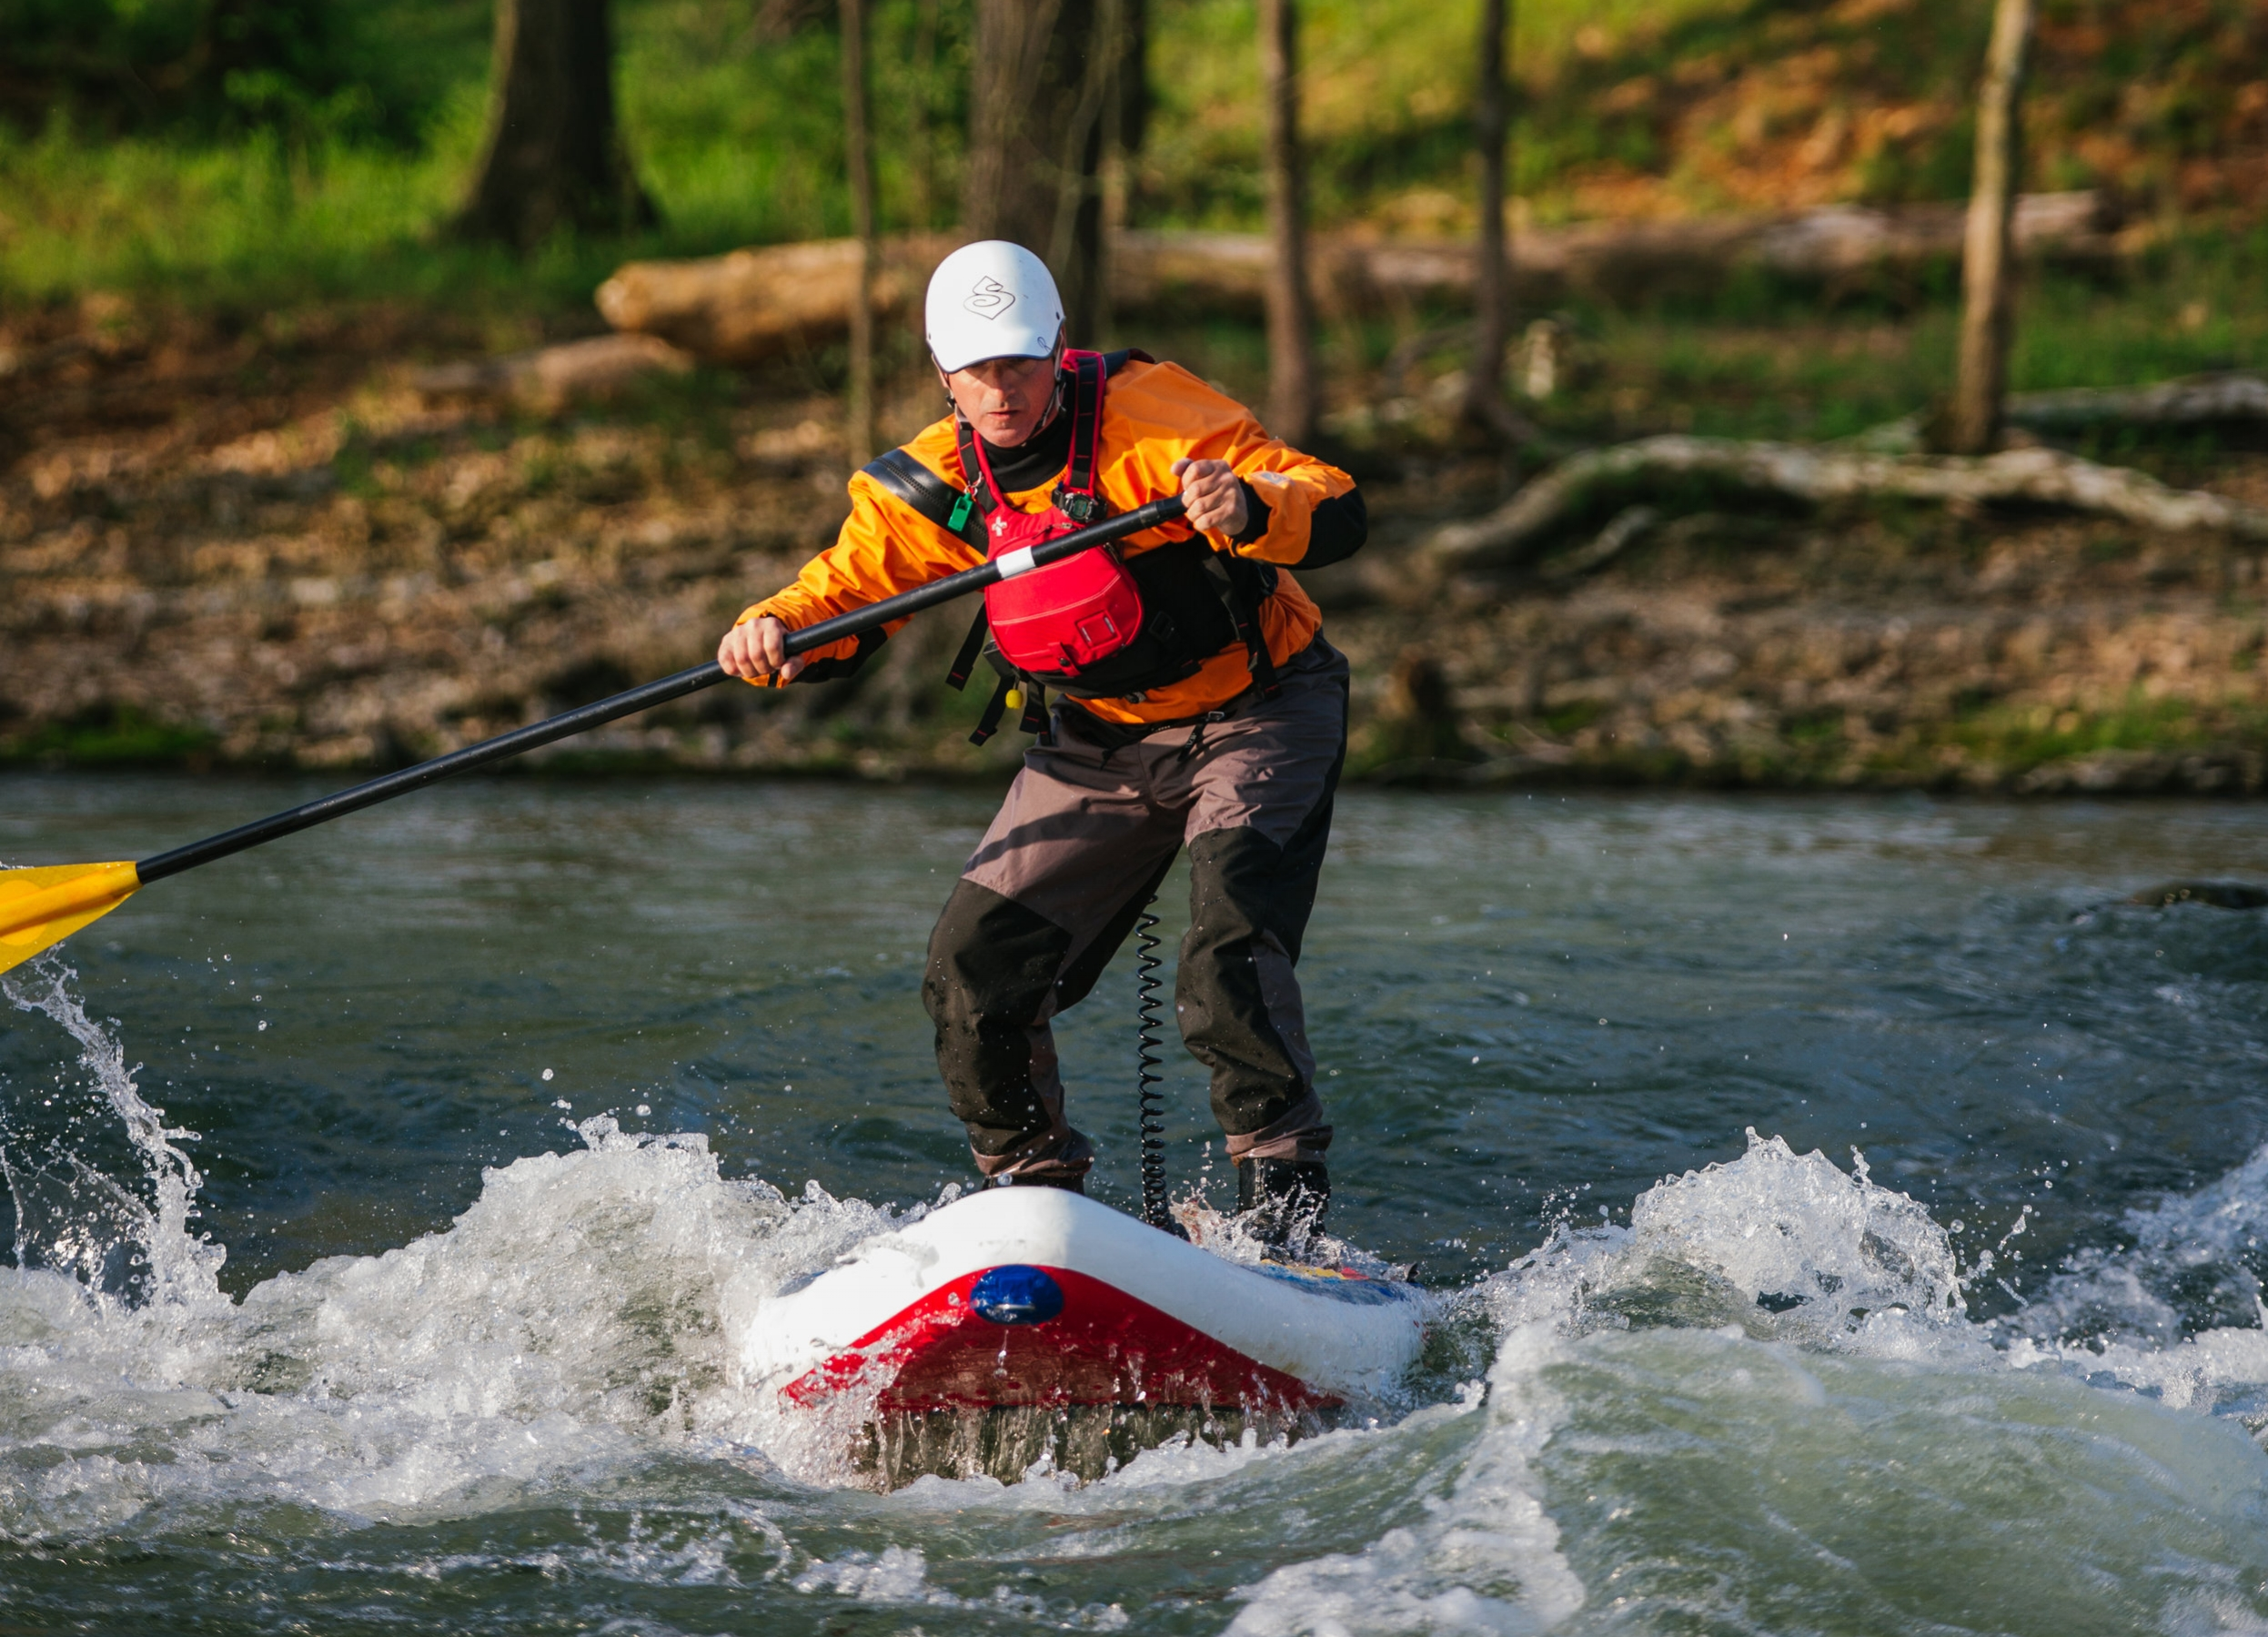 Rob Moody, one of two stand-up paddleboarding instructors in the state, navigates shoals at Siloam Springs Kayak Park.